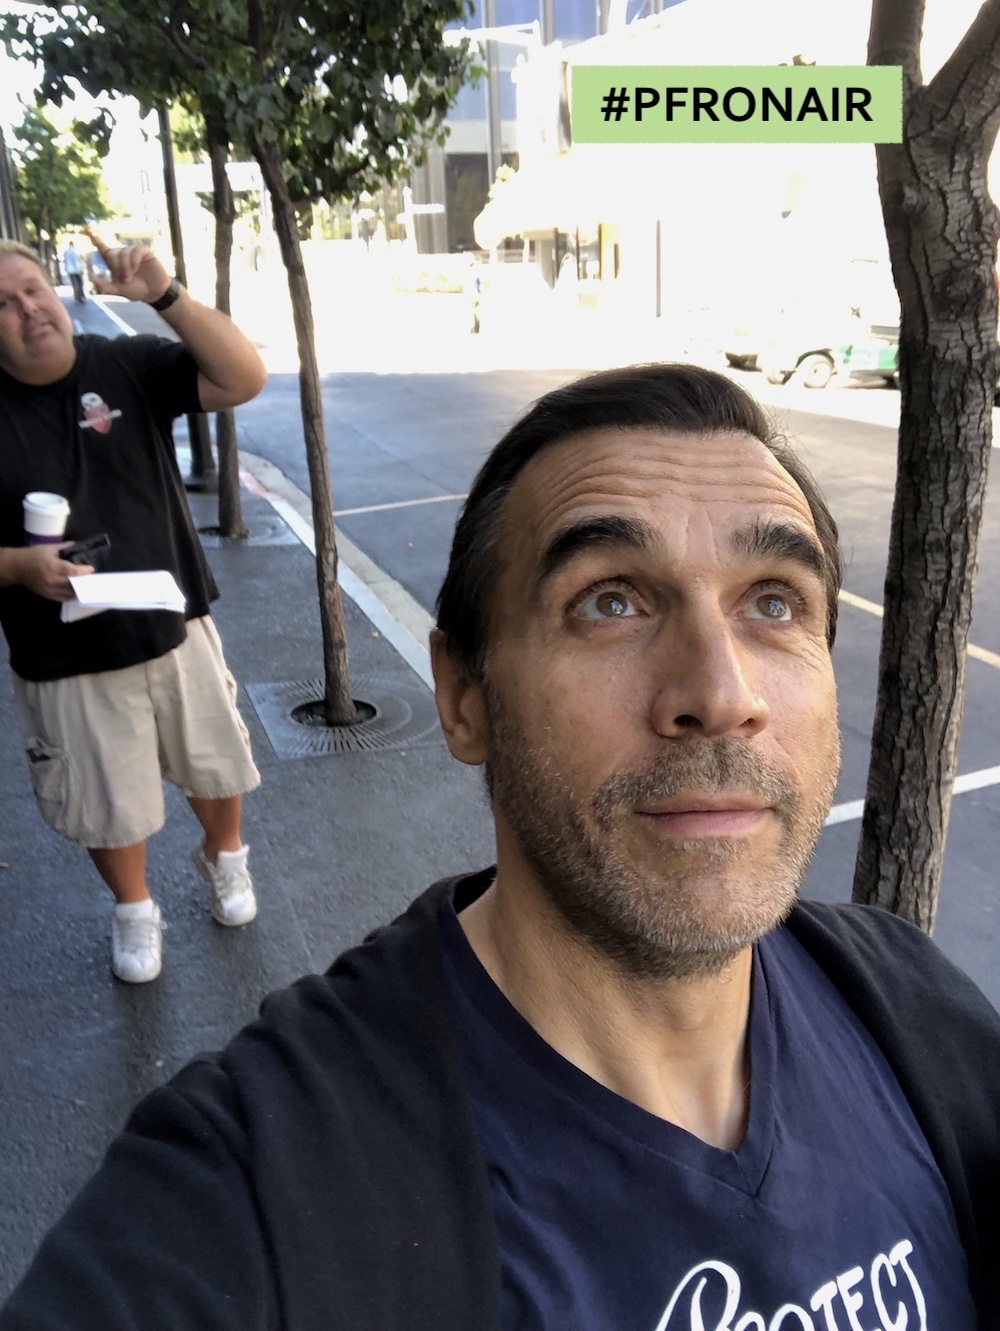 Adrian on the Lookout for a Superhero While Recording the Show...